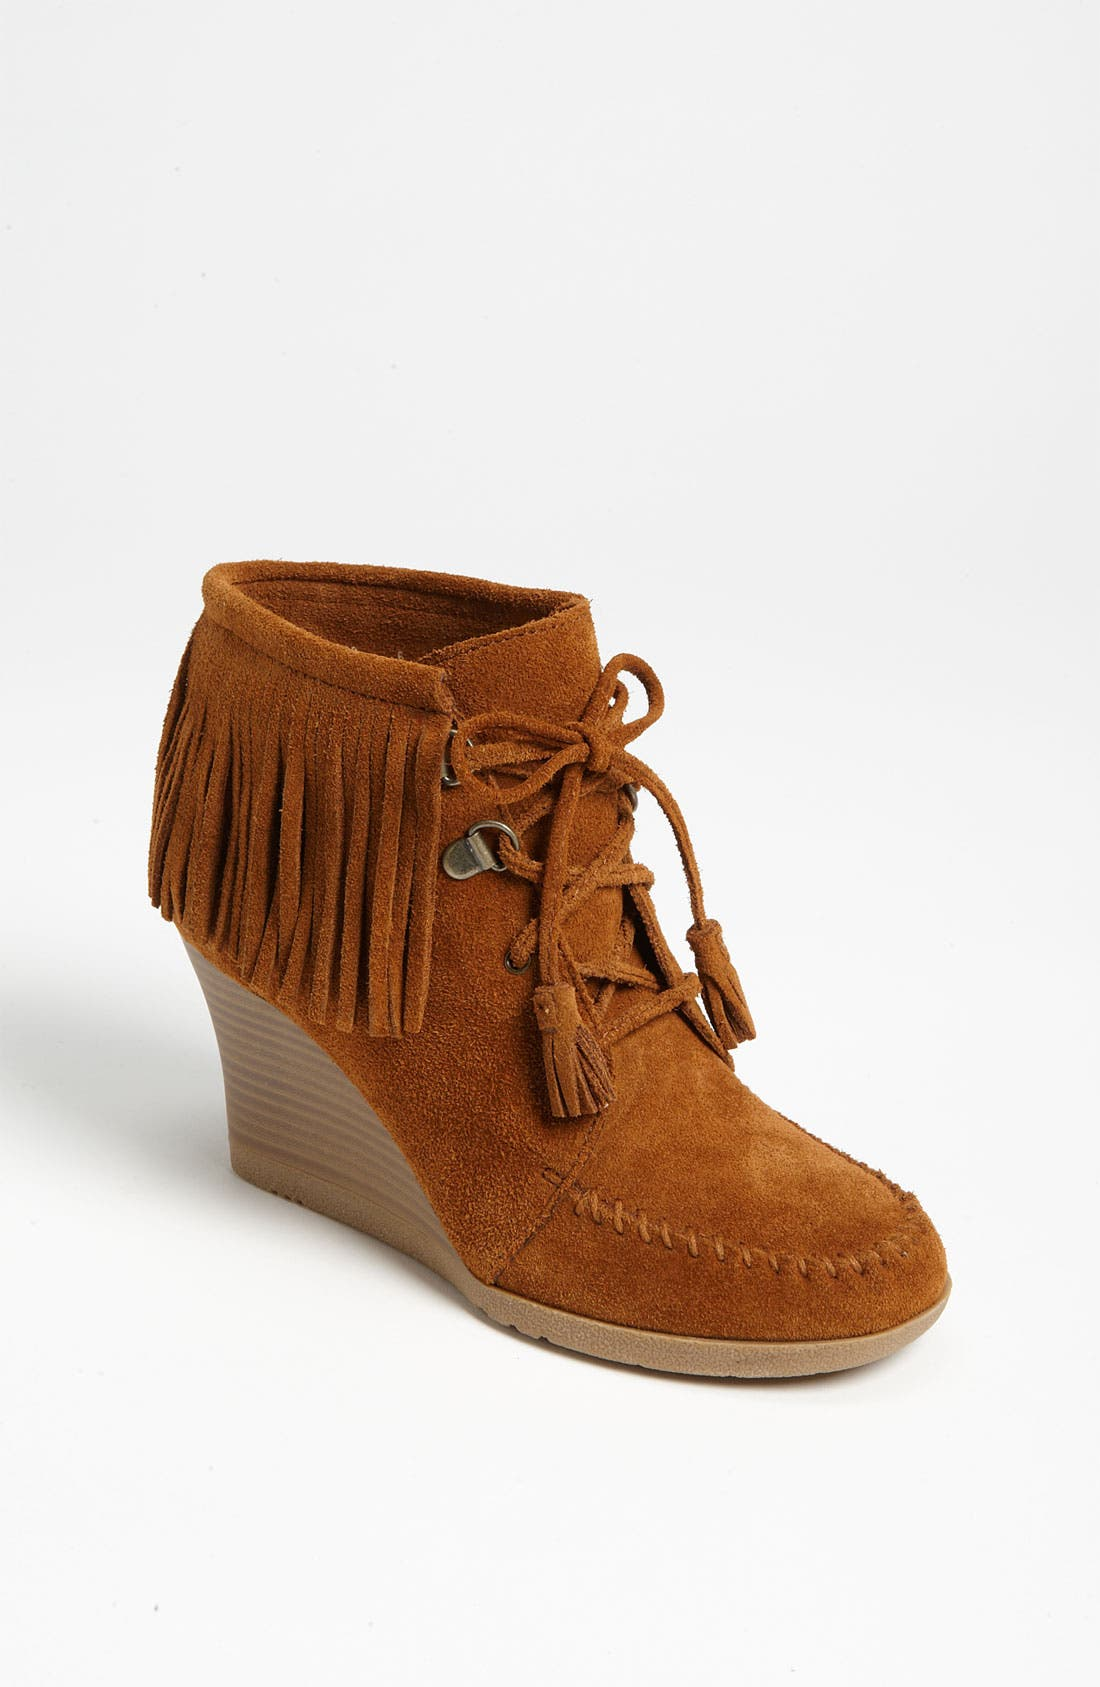 Main Image - Minnetonka Lace-Up Fringe Ankle Boot